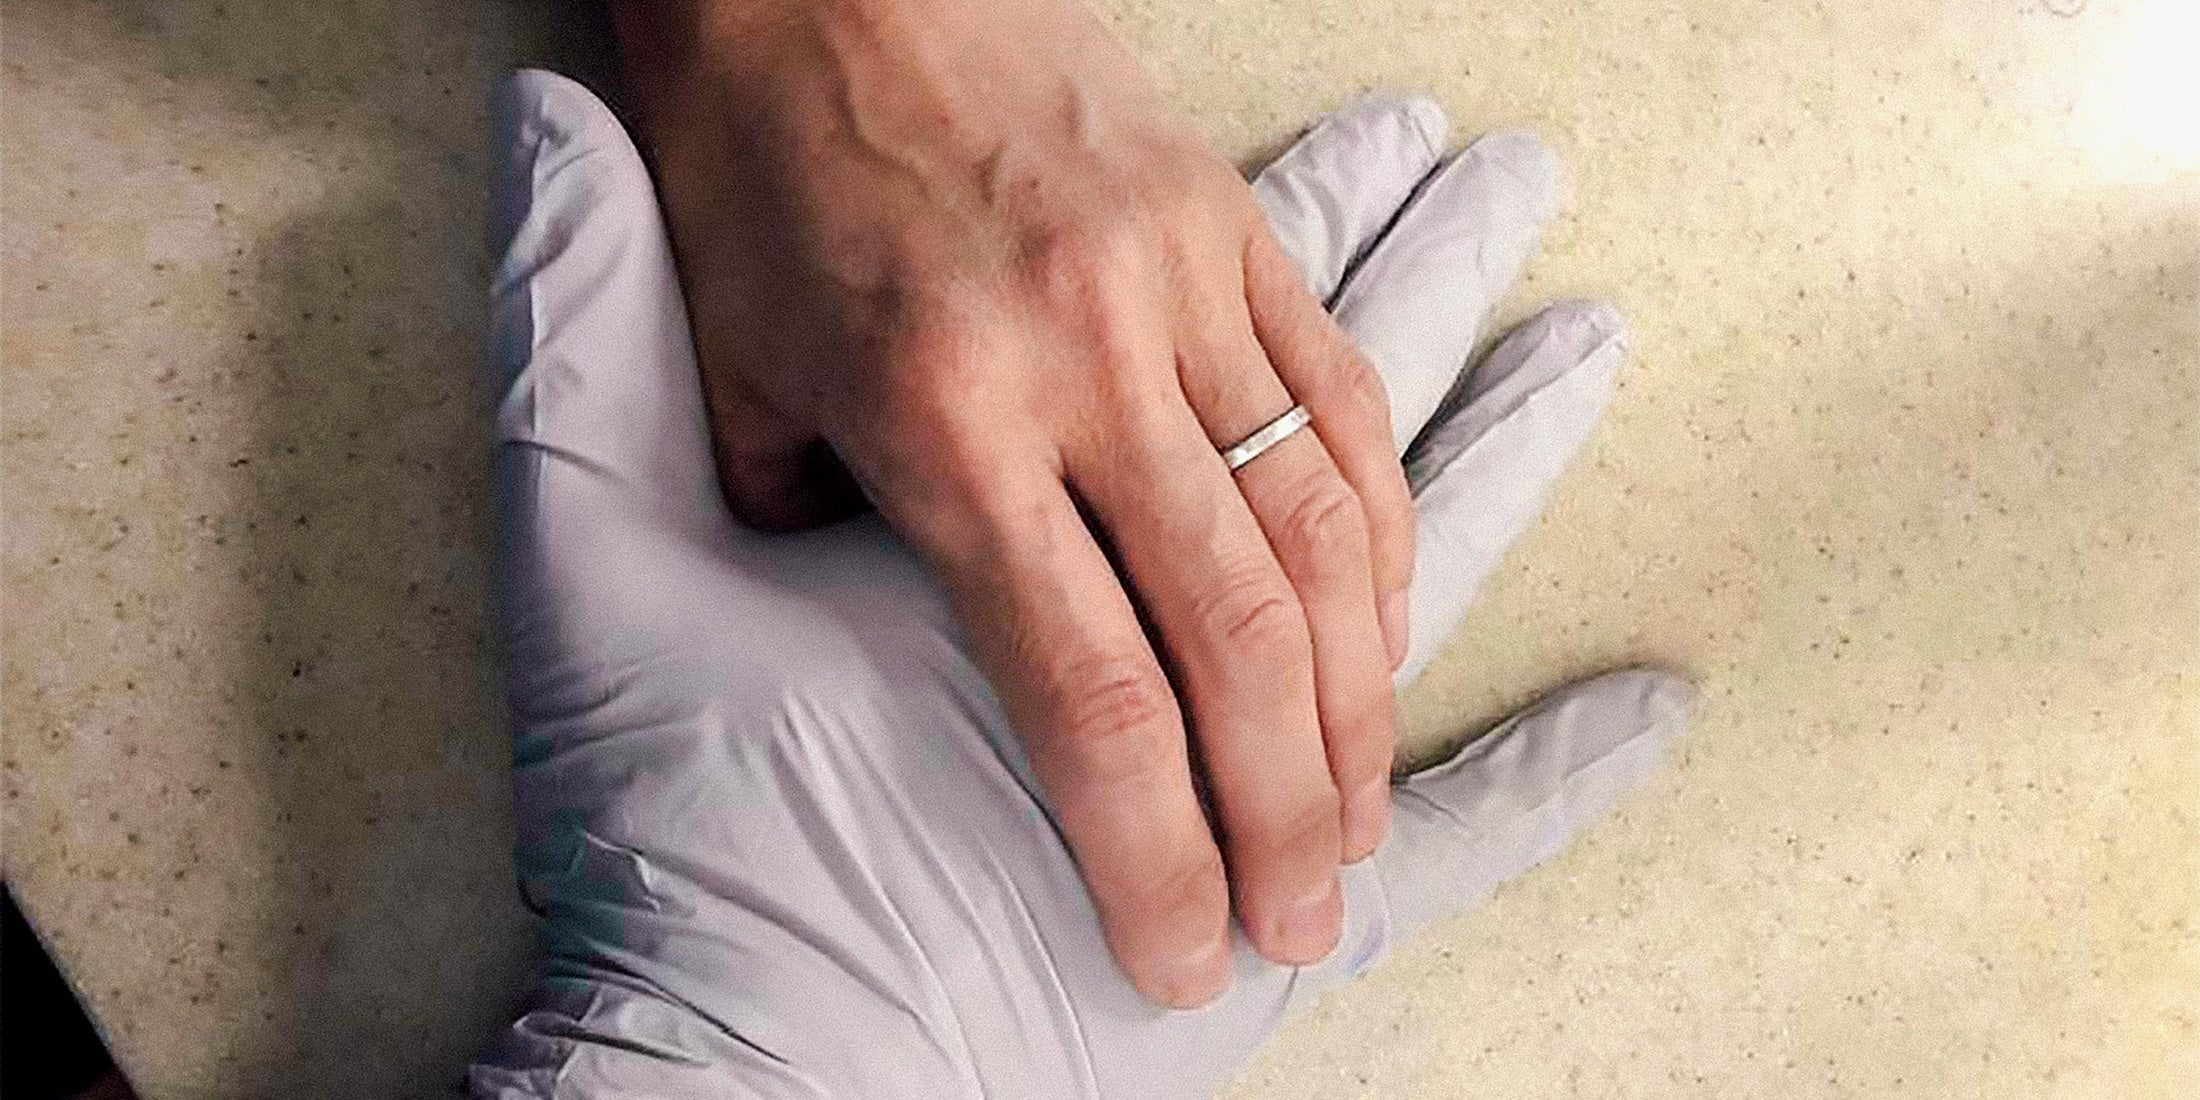 Hanna's bare hand with a wedding ring holding Steve's hand in a surgical glove